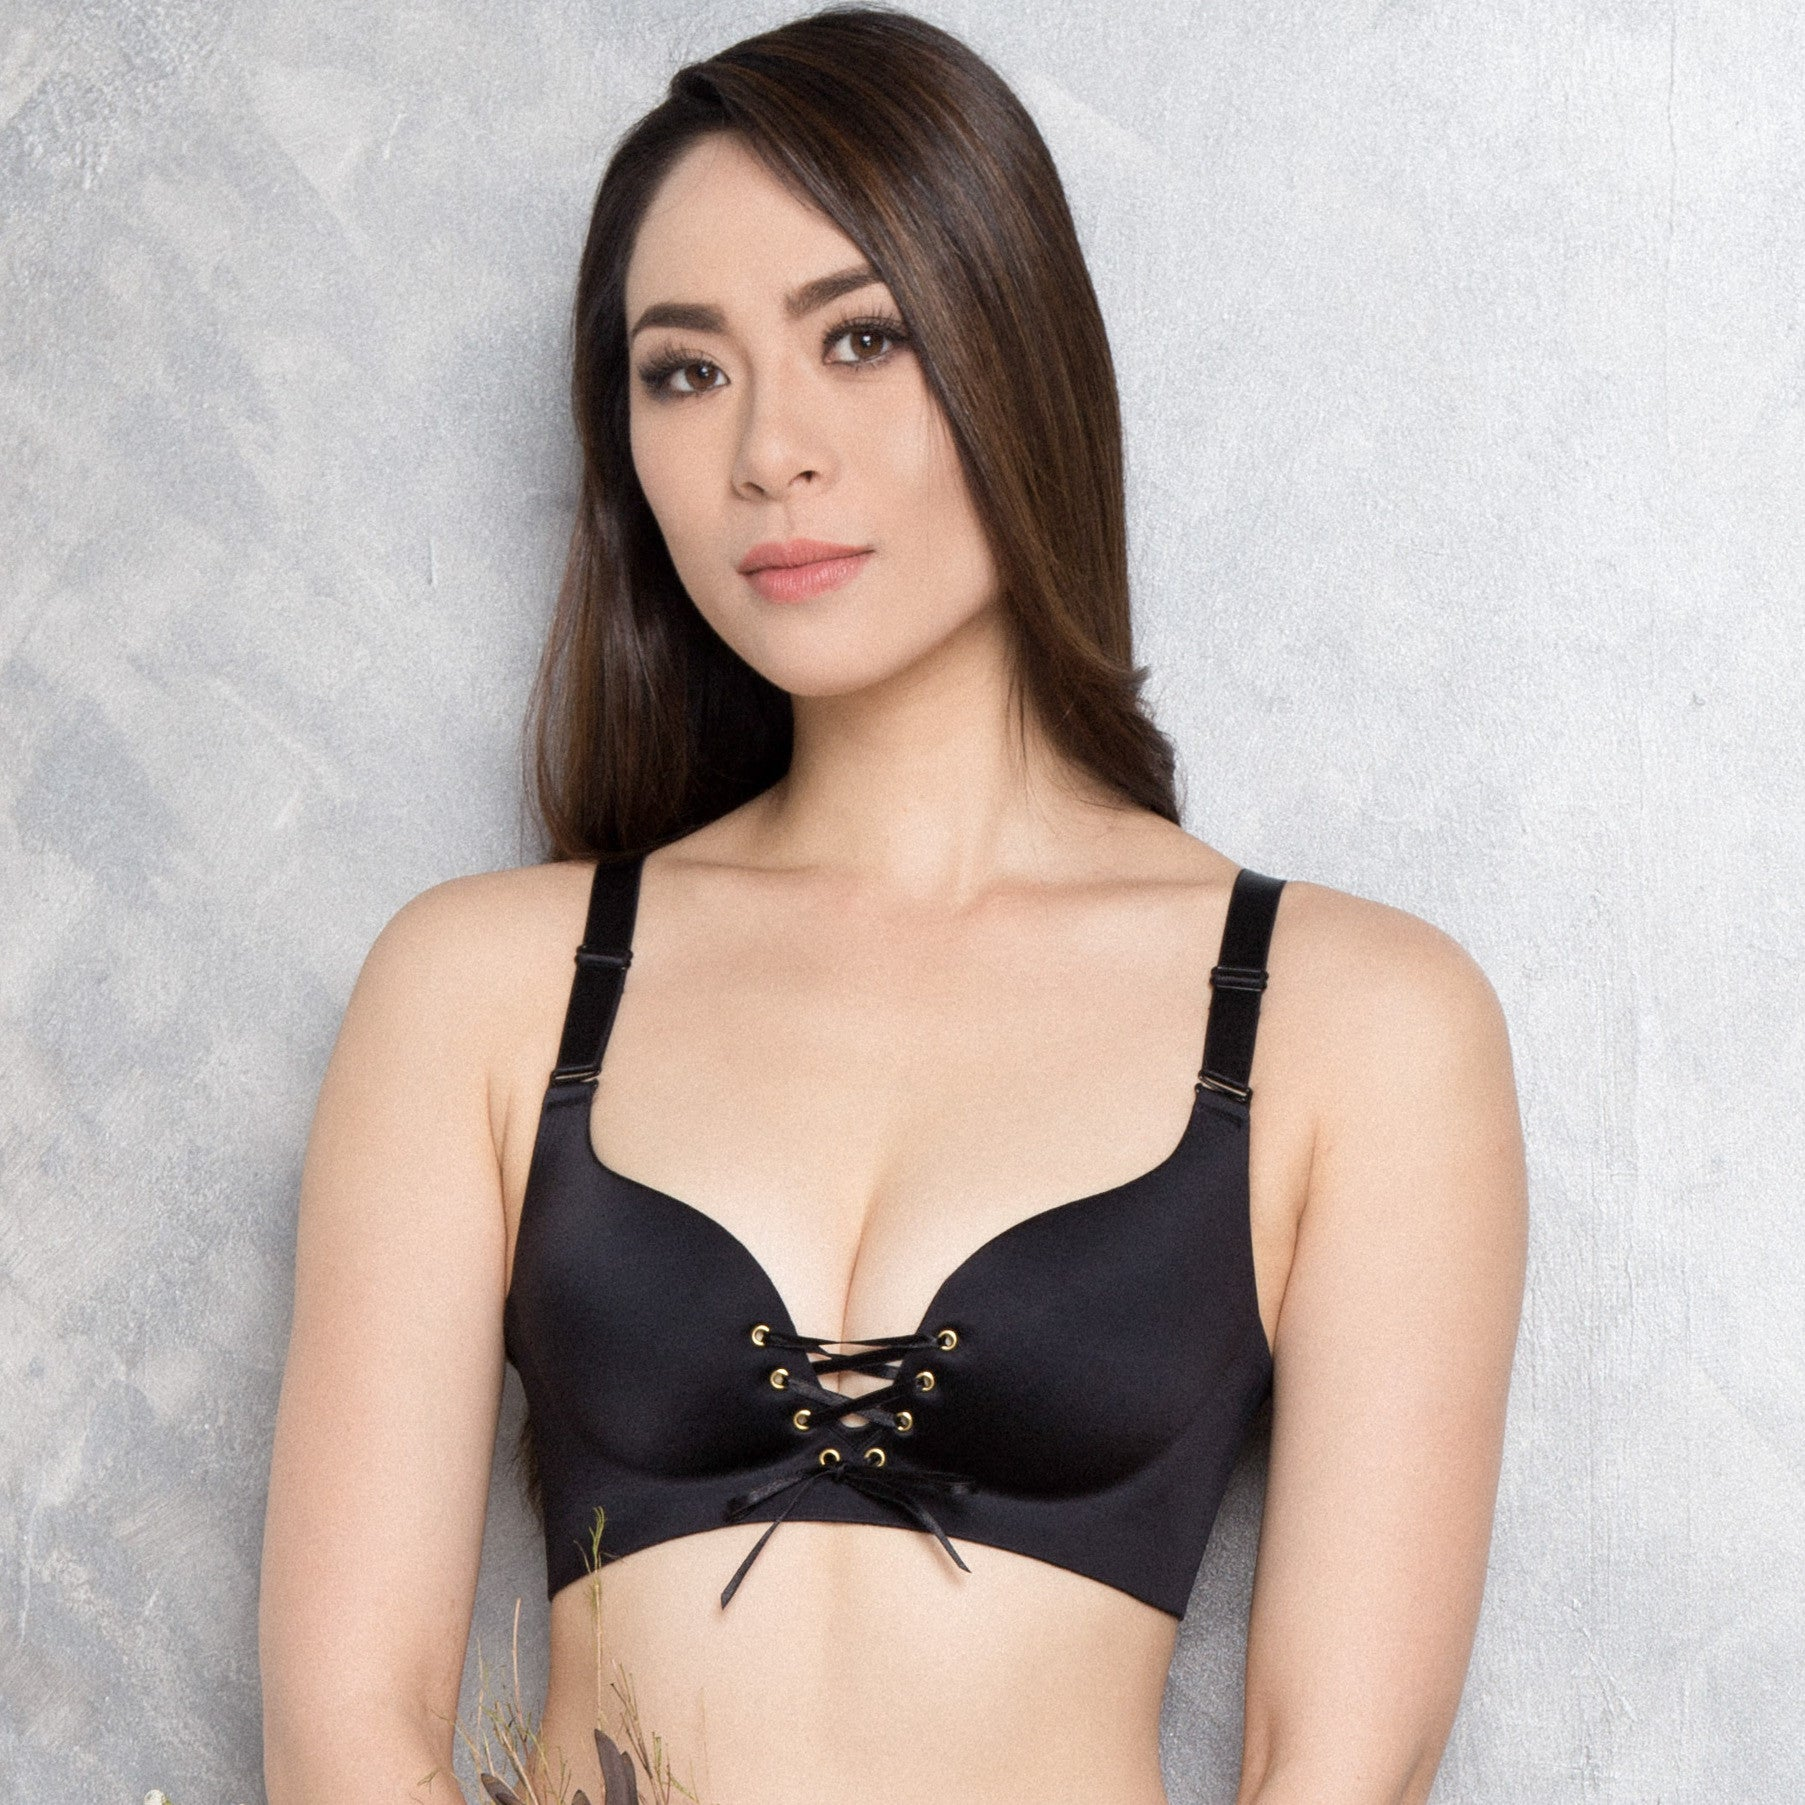 ebf3a2370a764 Date Night Super Push Up Bra(Extra Padding) (32B ONLY) - I M IN - i m i n x  x . c o m